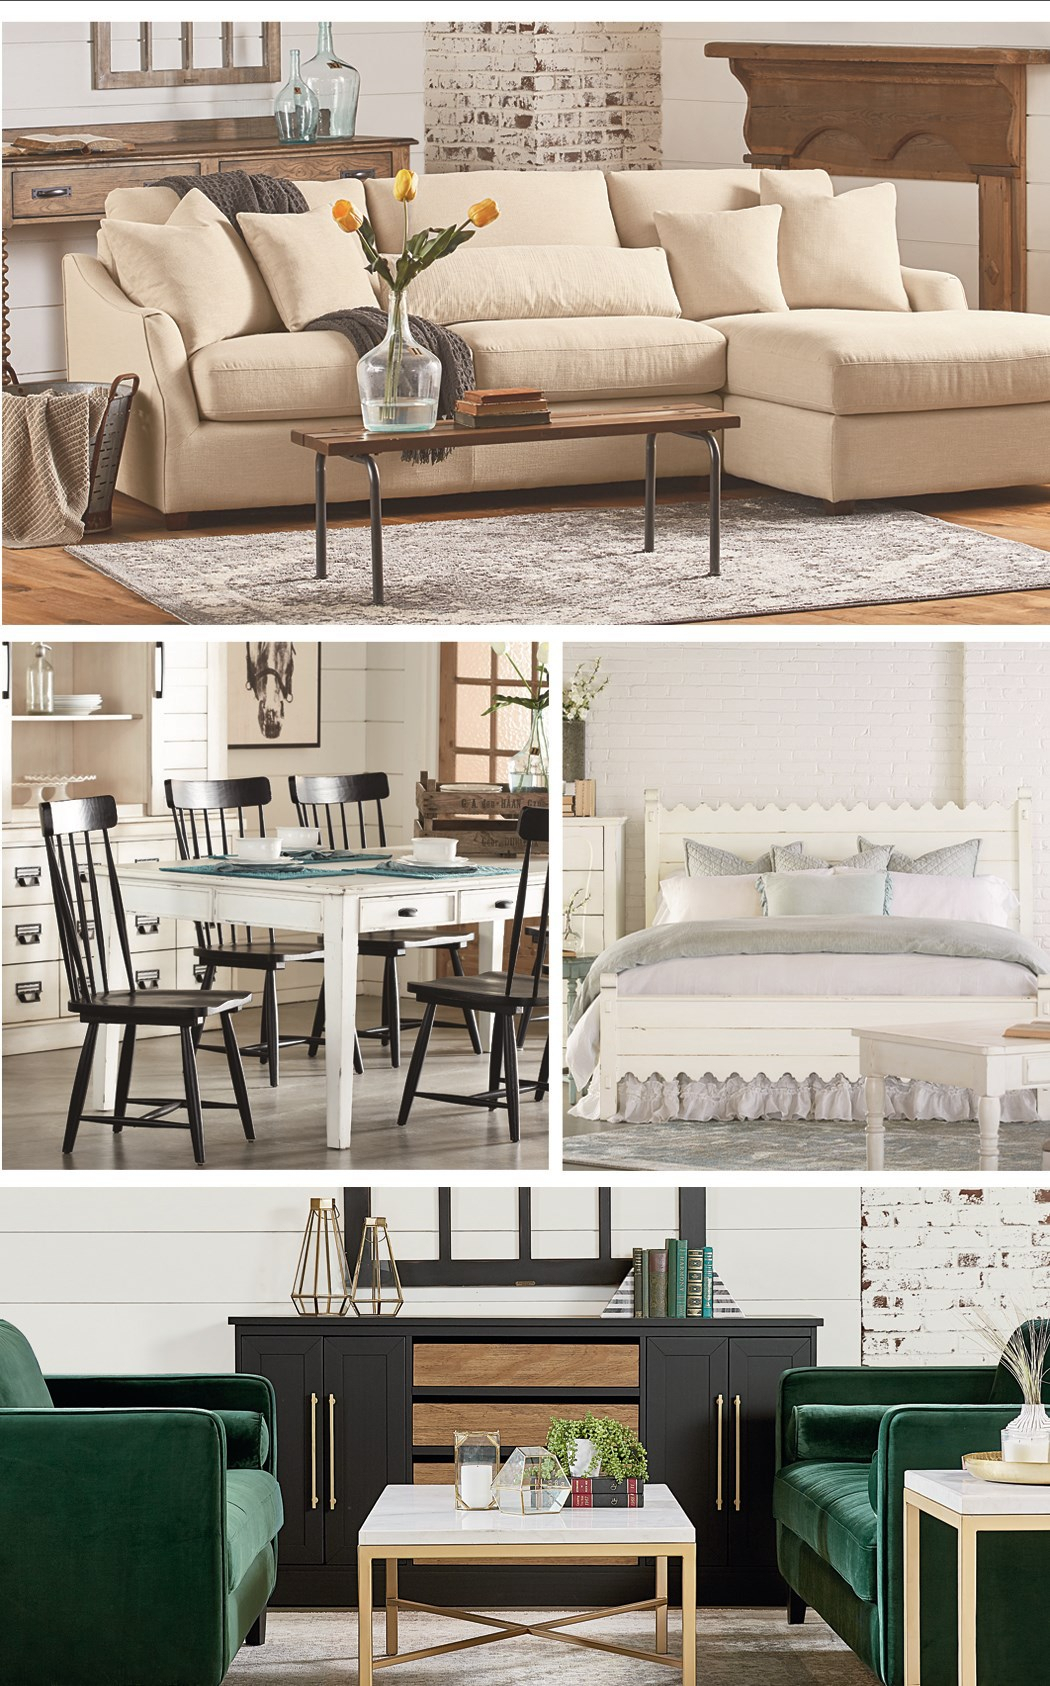 Magnolia Homejoanna Gaines | Jacksonville, Gainesville, Palm With Regard To Magnolia Home Homestead Sofa Chairs By Joanna Gaines (Image 20 of 25)